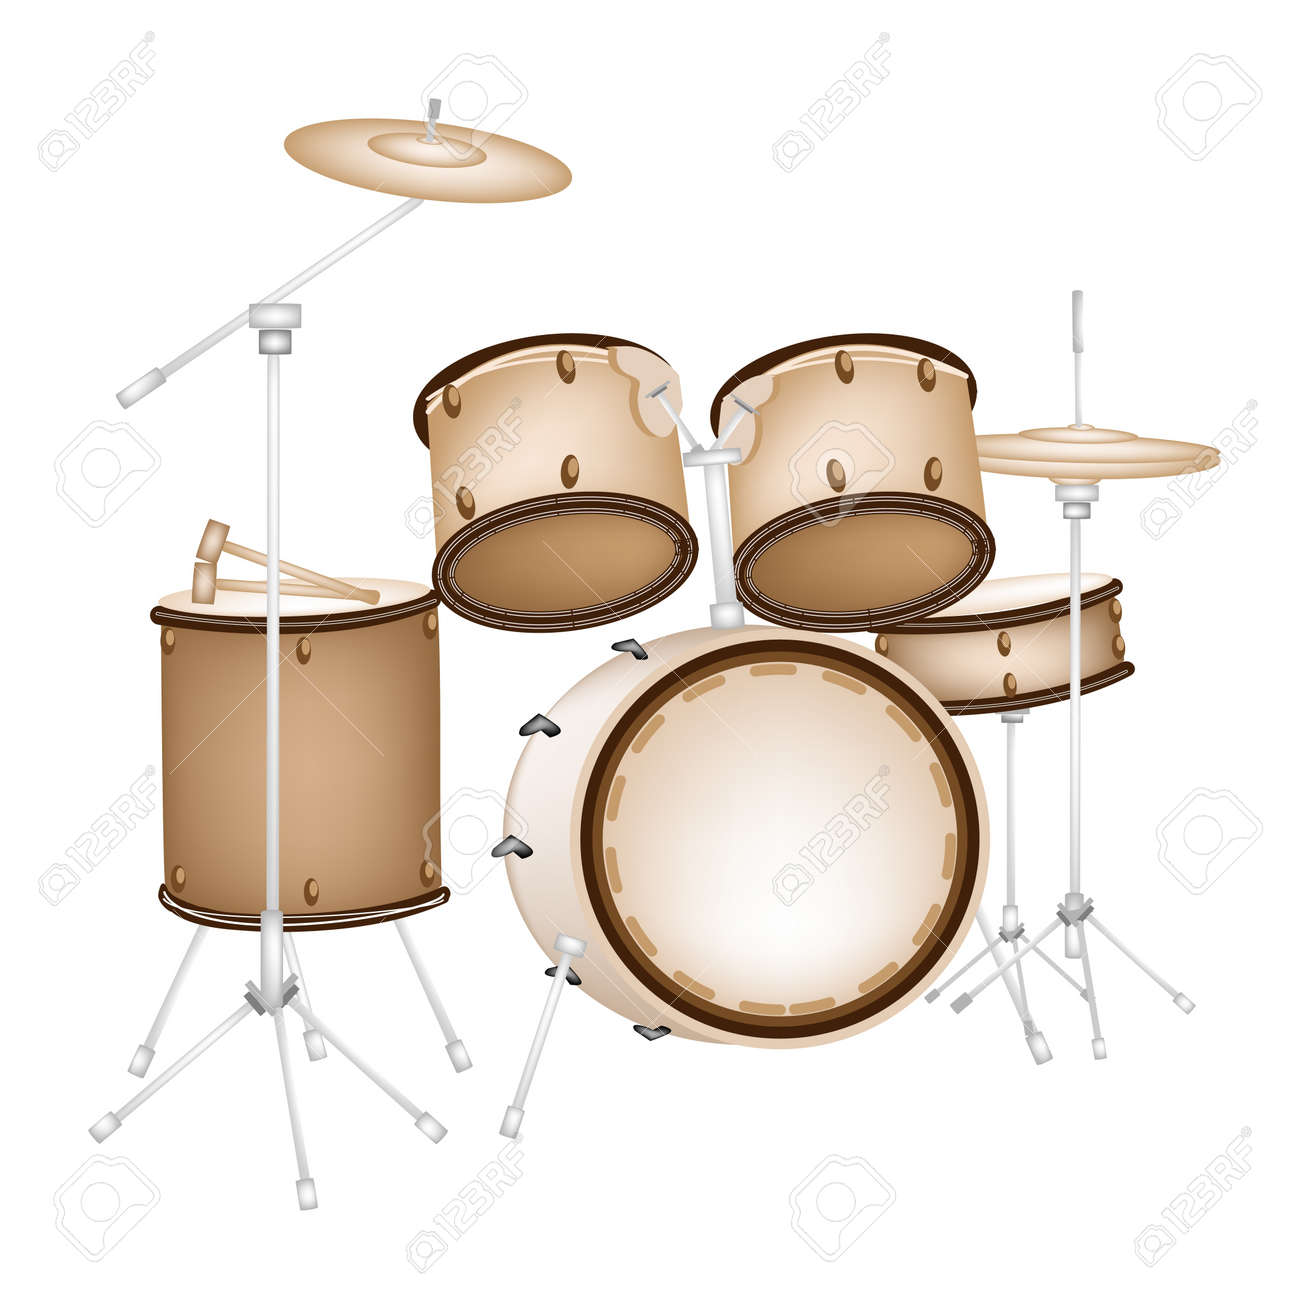 Music Instrument An Illustration Of A Set Retro Style Jazz Drum Kit On White